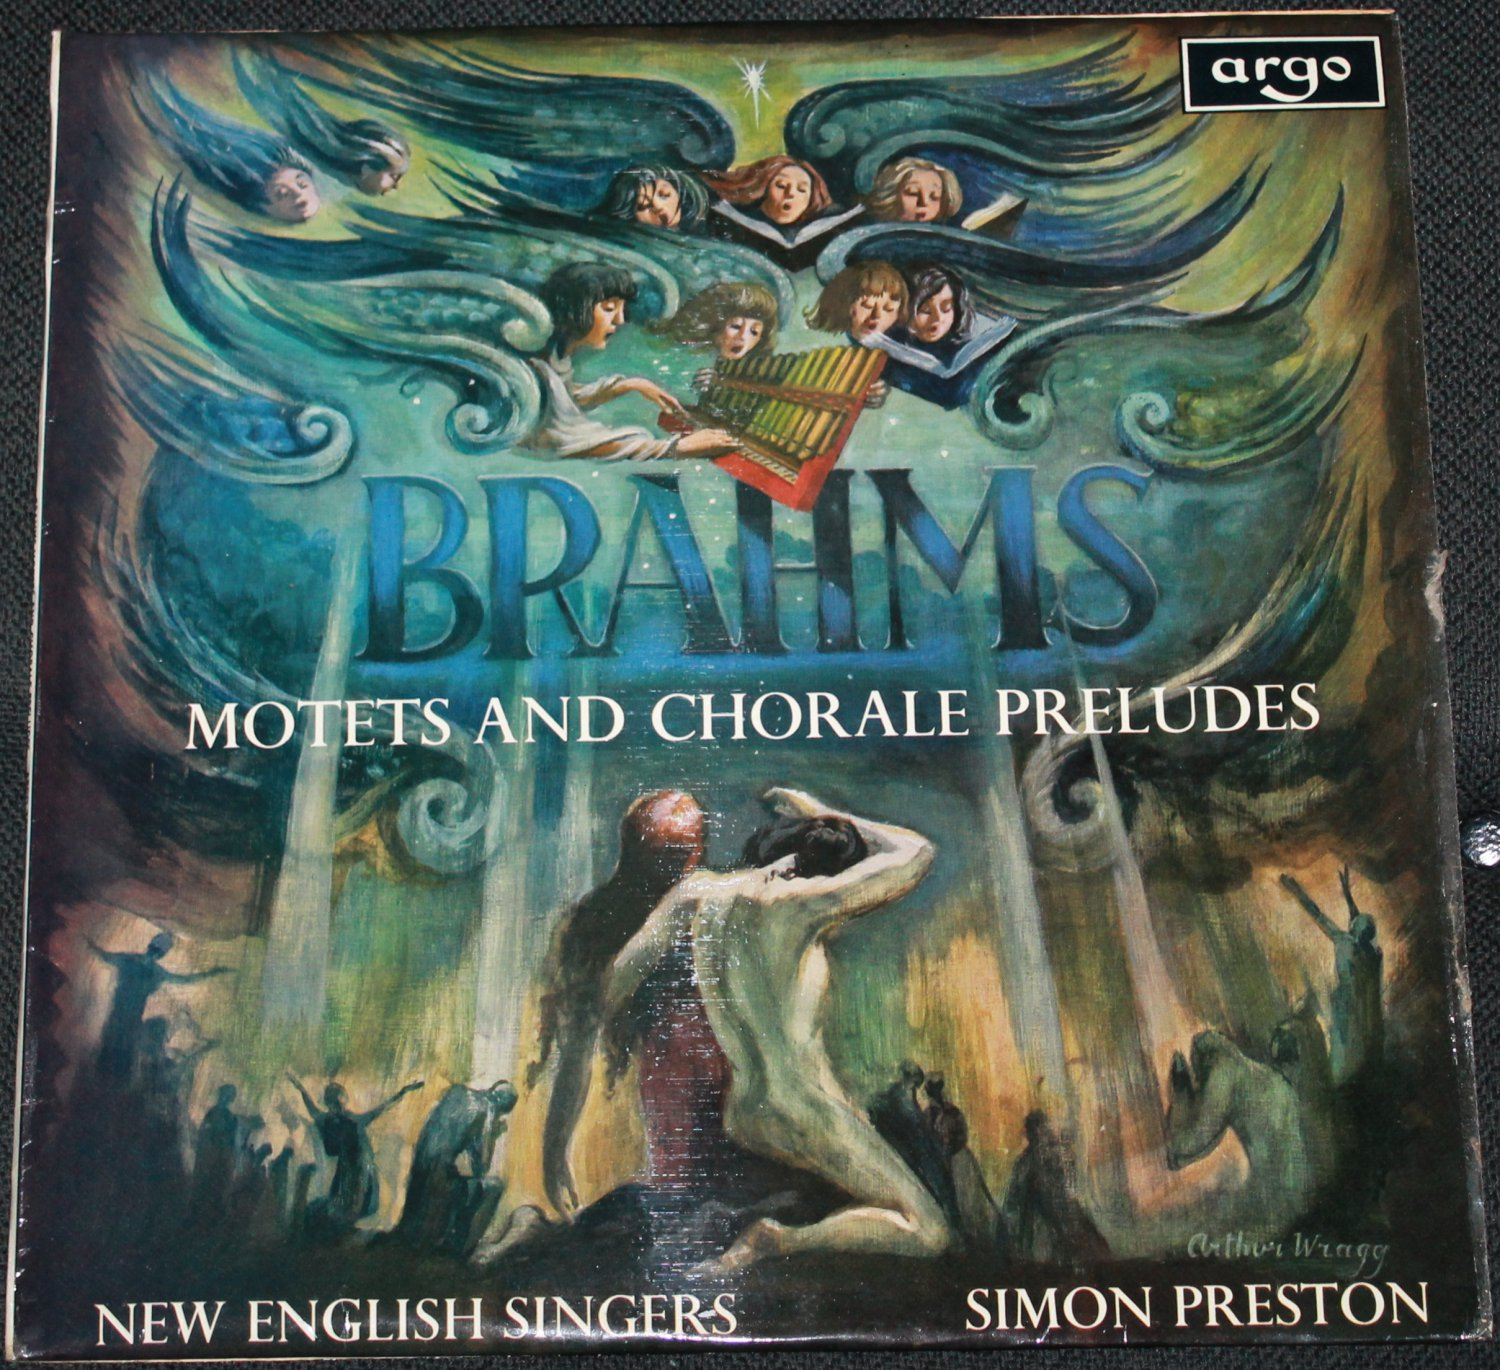 1968 Brahms Motets And Chorale Preludes - New English Singers - Simon Peterson director and organist